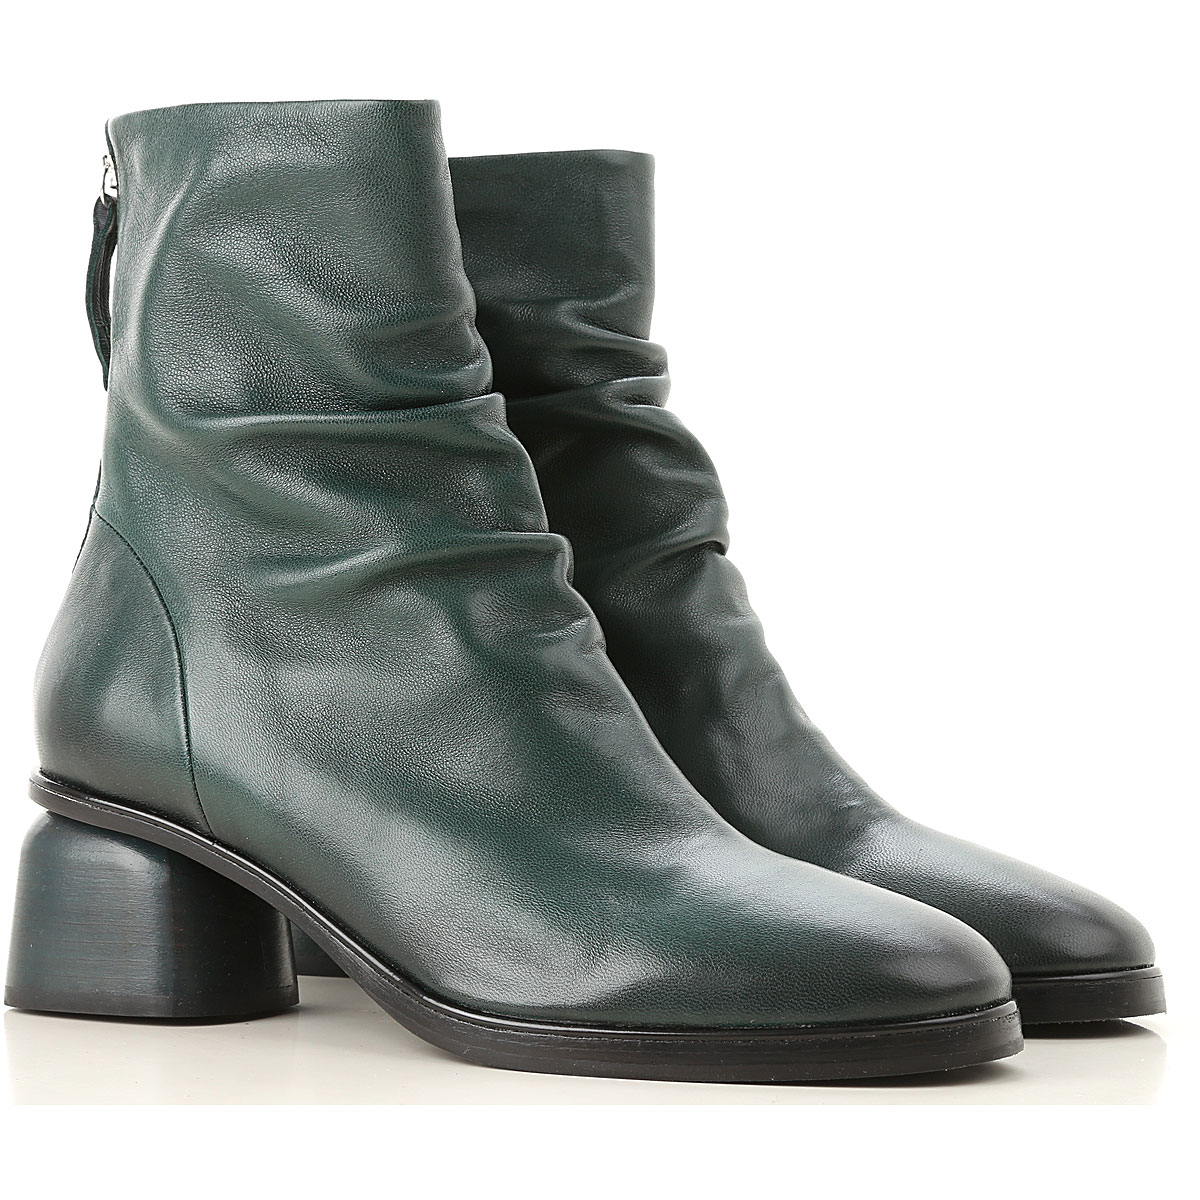 Image of Halmanera Boots for Women, Booties, Dark Green, Leather, 2017, 6 7 9